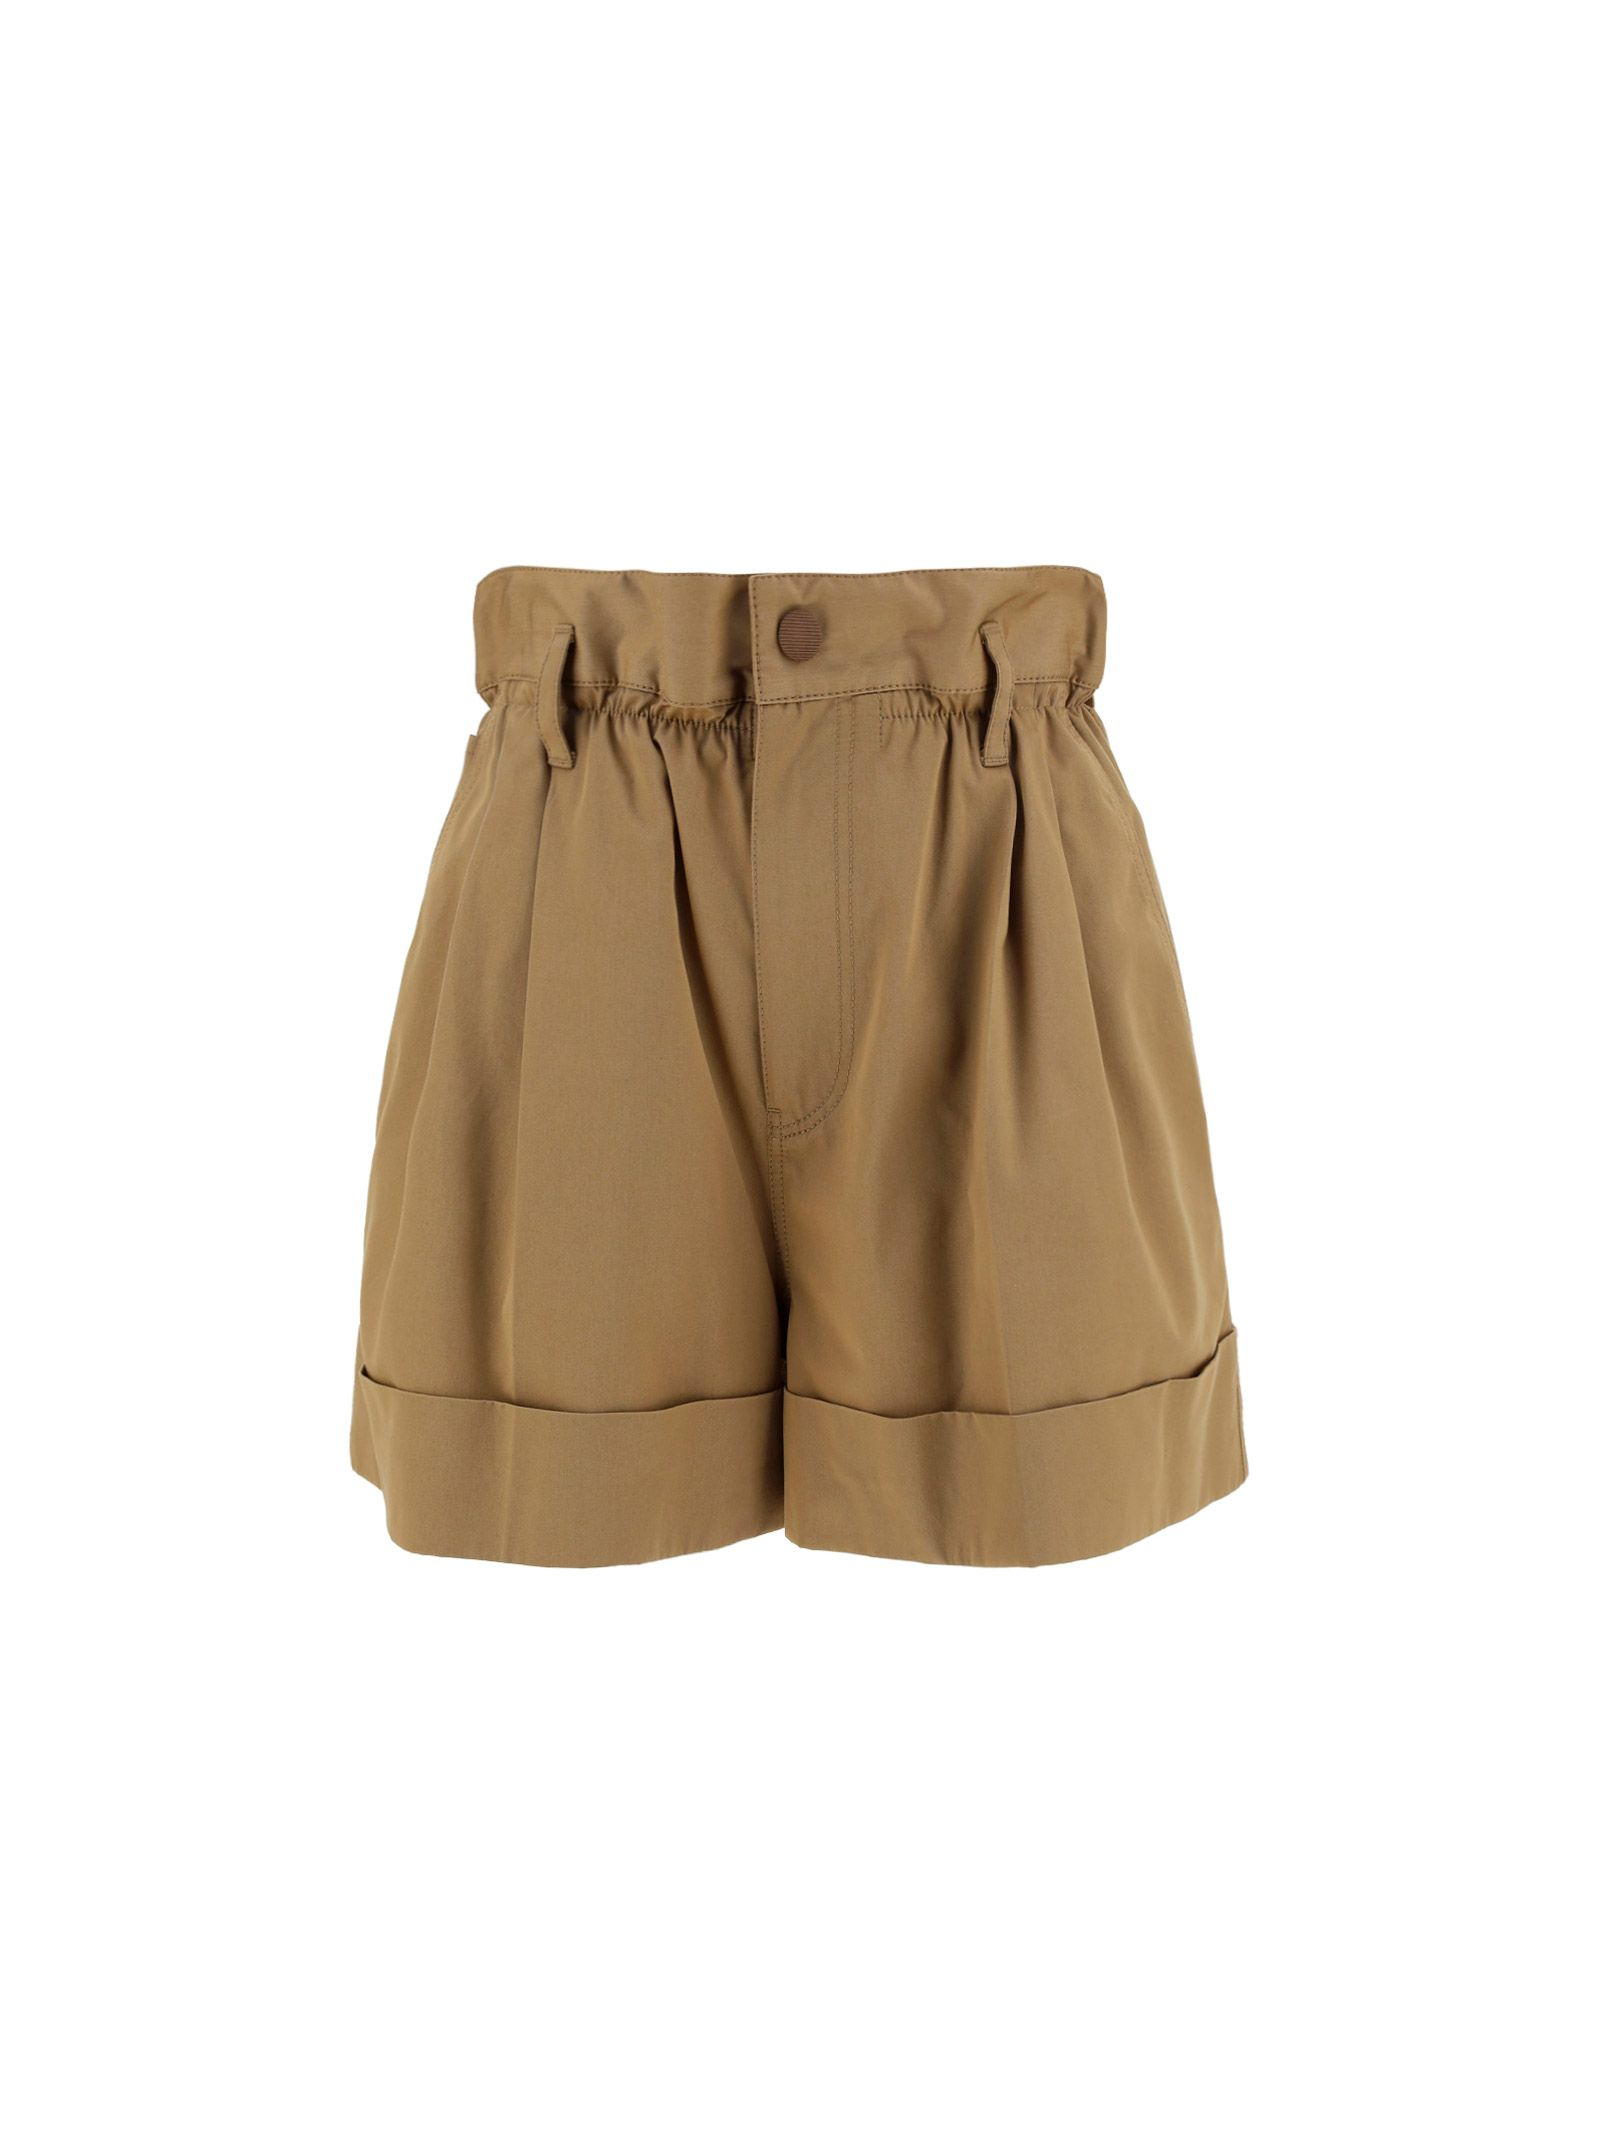 Moncler MONCLER WOMEN'S BROWN OTHER MATERIALS SHORTS